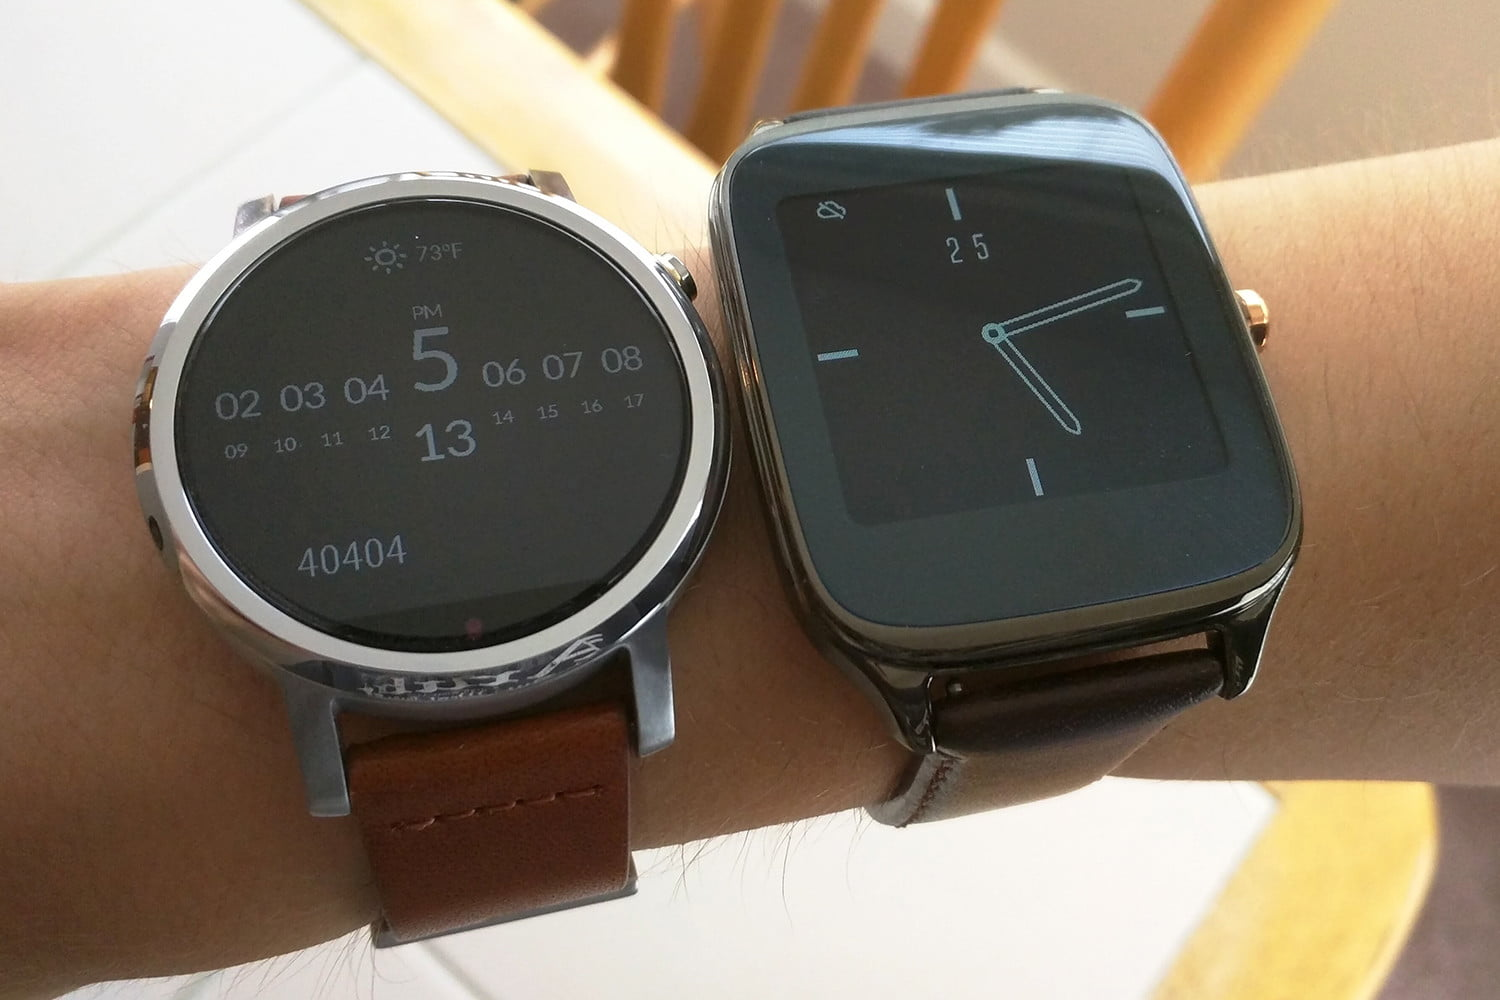 Asus ZenWatch 2 | Review, Specs, Price, and More